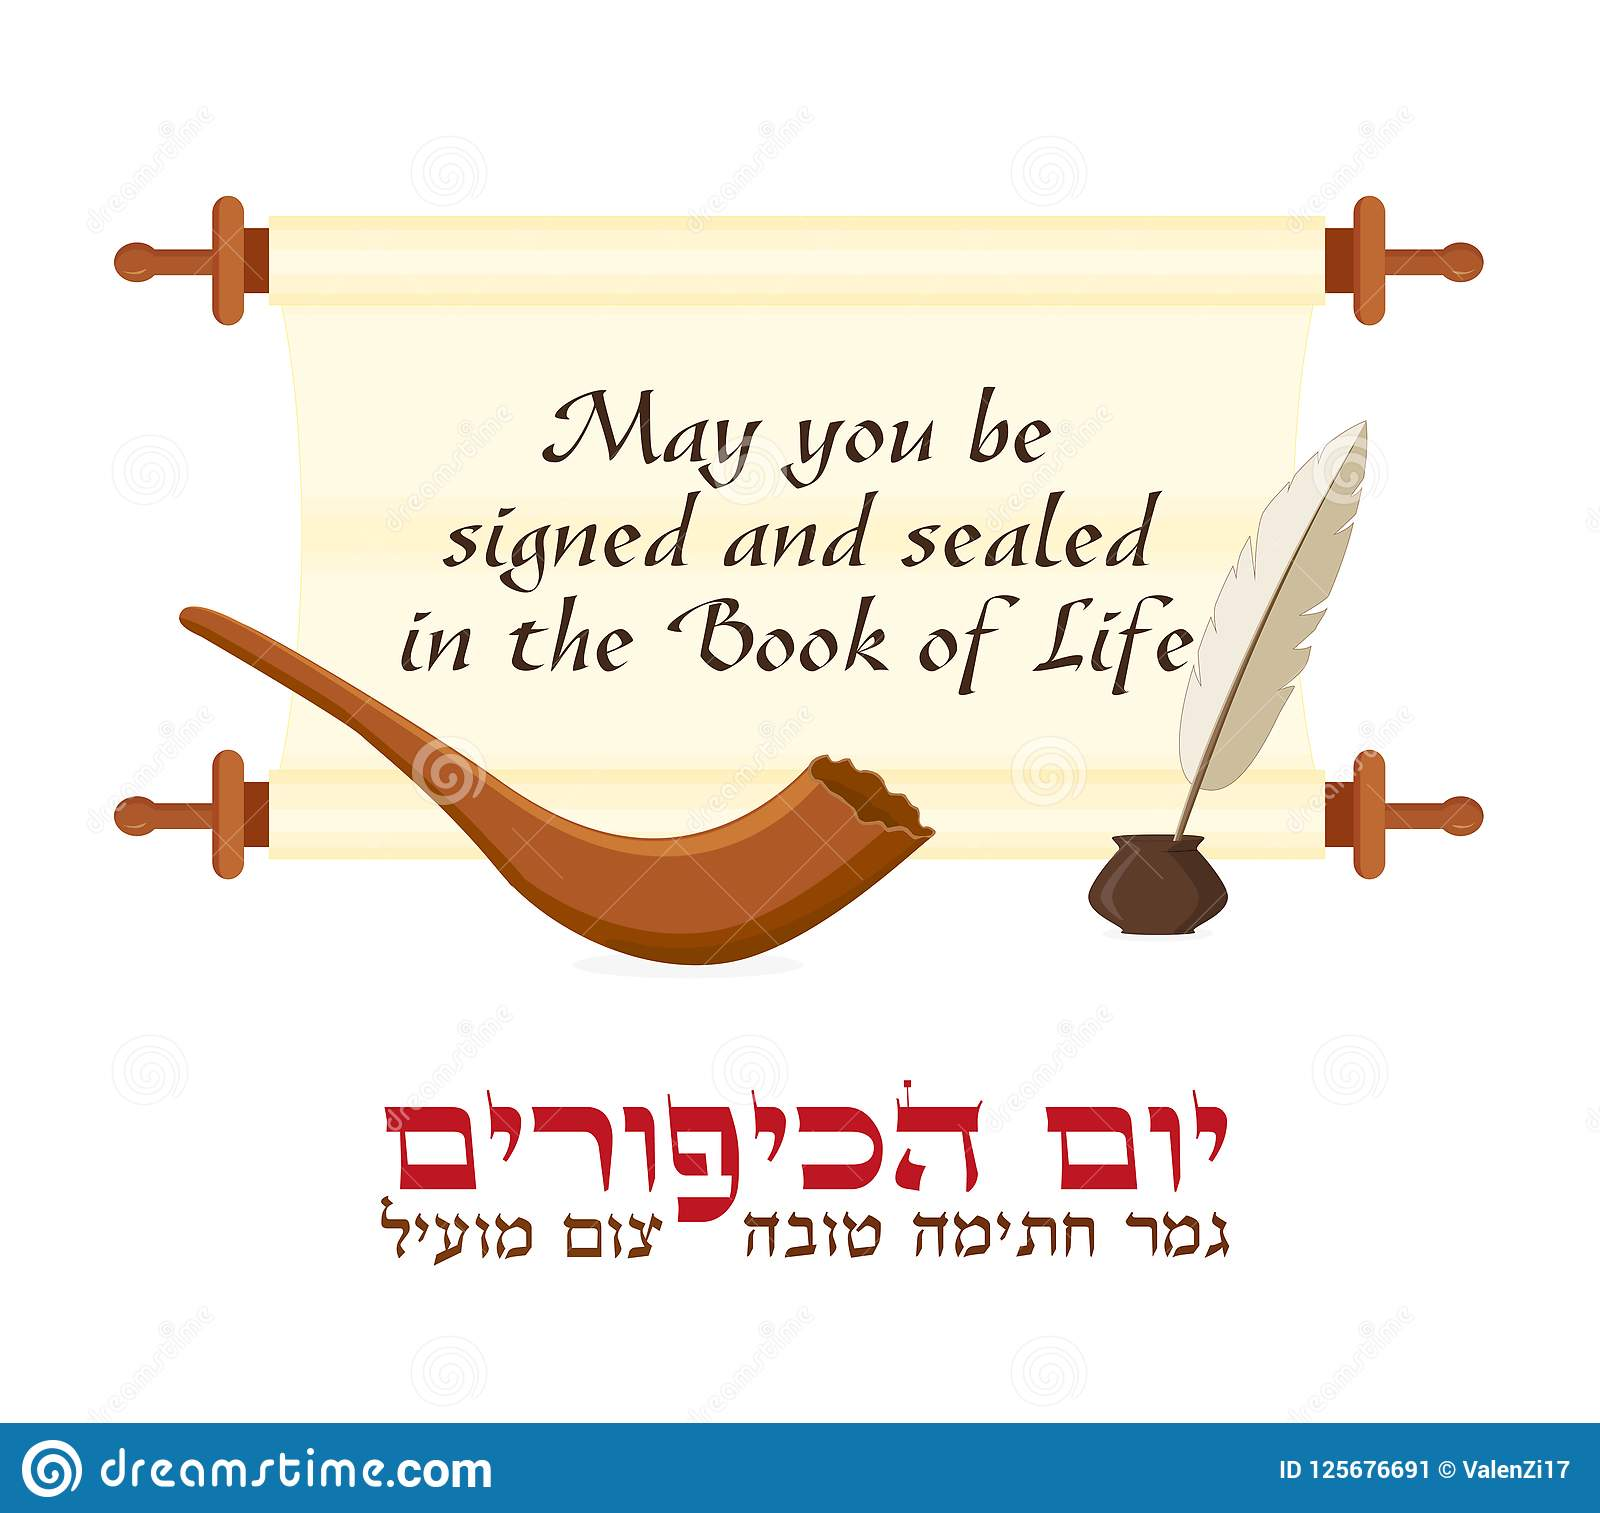 Jewish holiday of yom kippur greeting card stock illustration download jewish holiday of yom kippur greeting card stock illustration illustration of parchment m4hsunfo